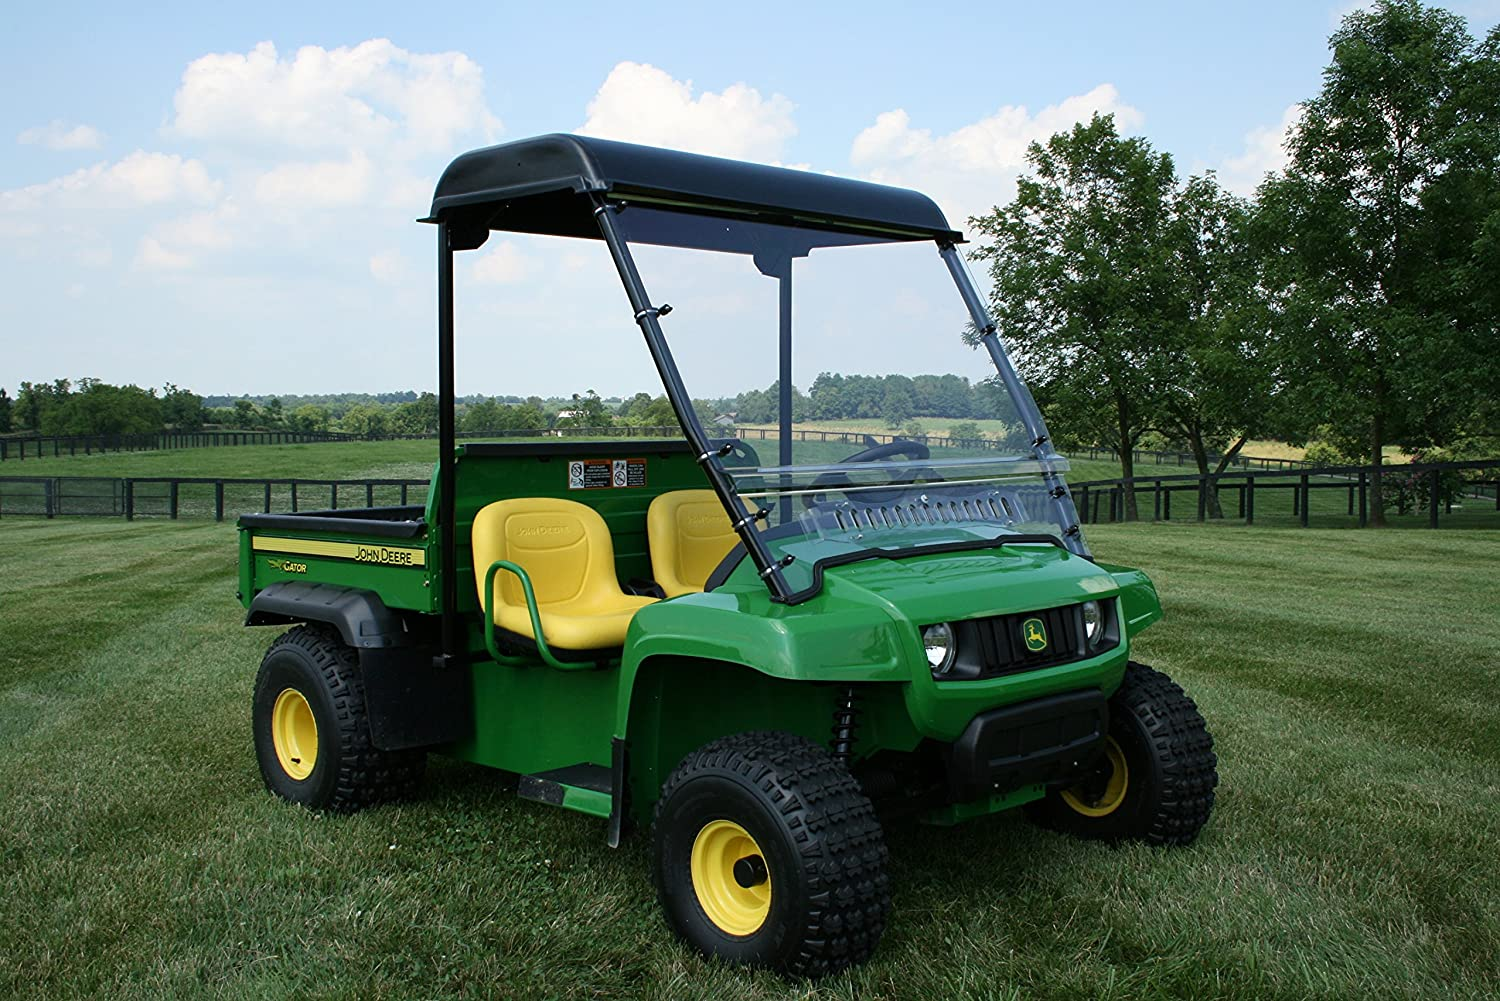 john deere gator canopy tops soft top or cap john deere gator hpx xuv utv enclosure new. Black Bedroom Furniture Sets. Home Design Ideas